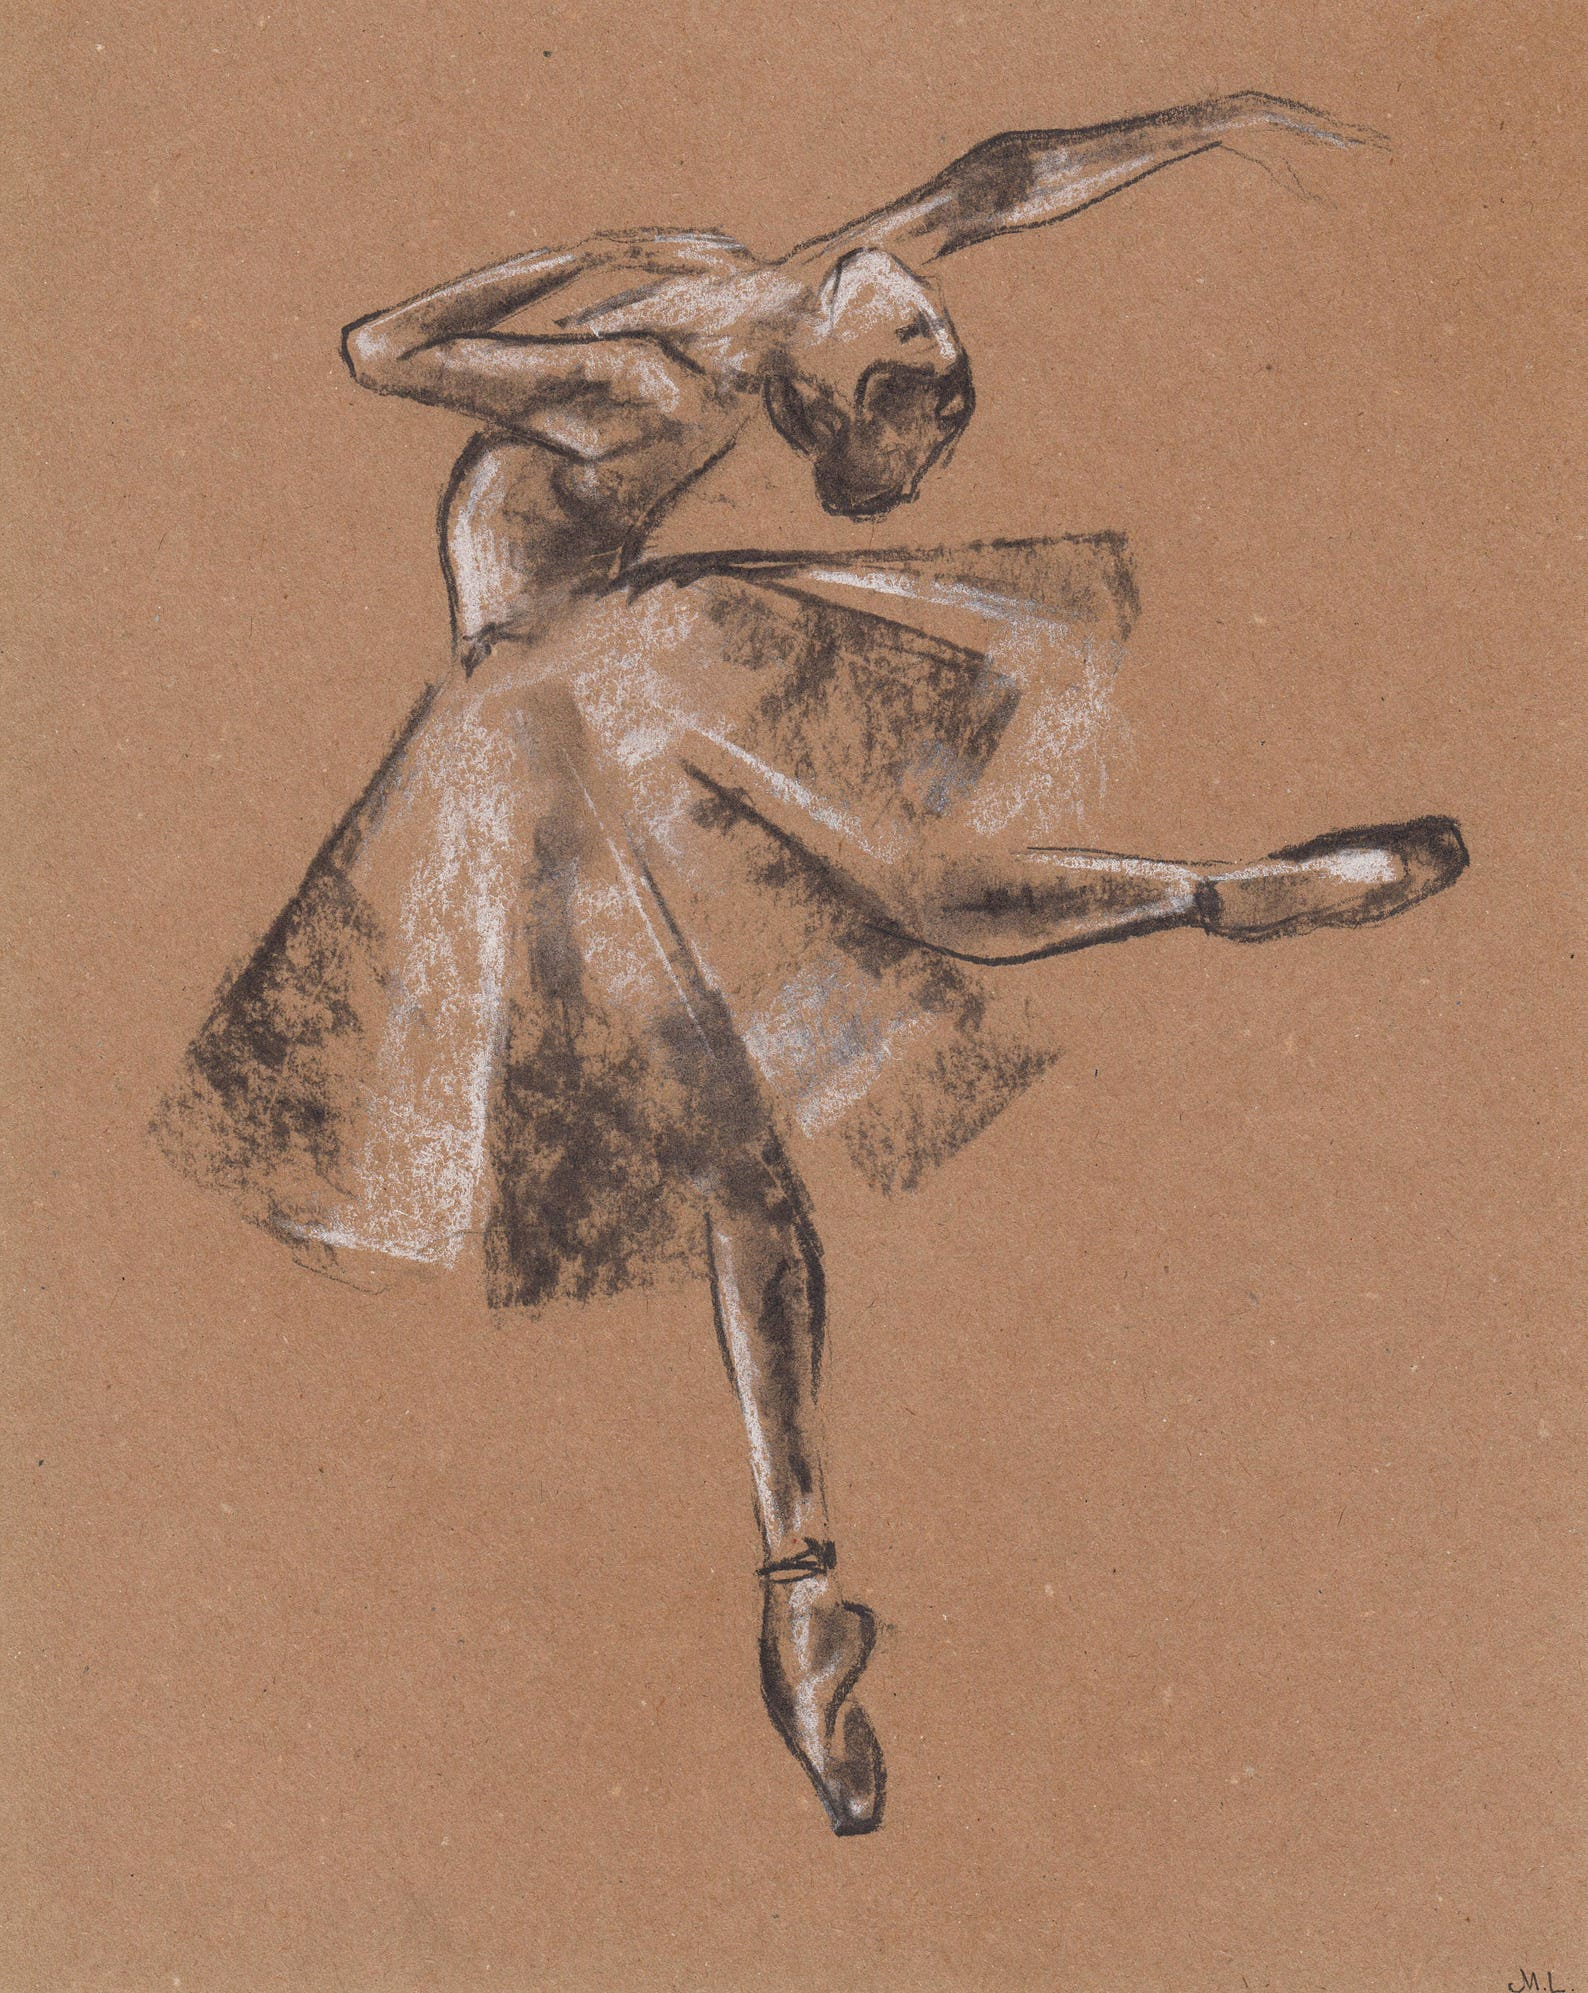 ballerina drawing. ballet drawing. ballerina illustration. ballerina dancing. ballet art. minimalistic art. charcoal drawing. or